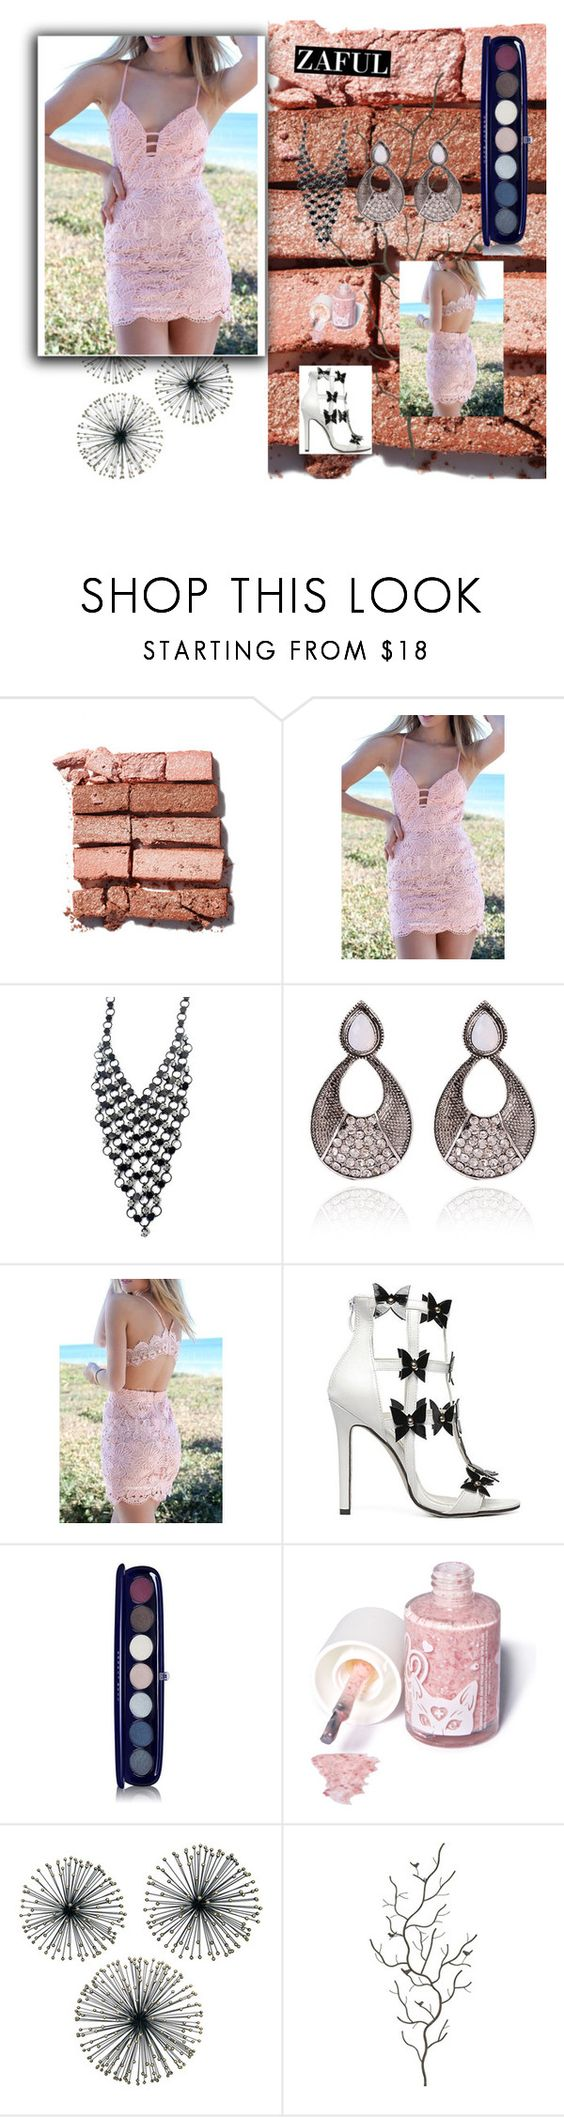 """Zaful# III-45"" by merima-musanovic ❤ liked on Polyvore featuring Bobbi Brown Cosmetics, Marc Jacobs, Sugarpill, Dot & Bo, Universal Lighting and Decor and zaful"